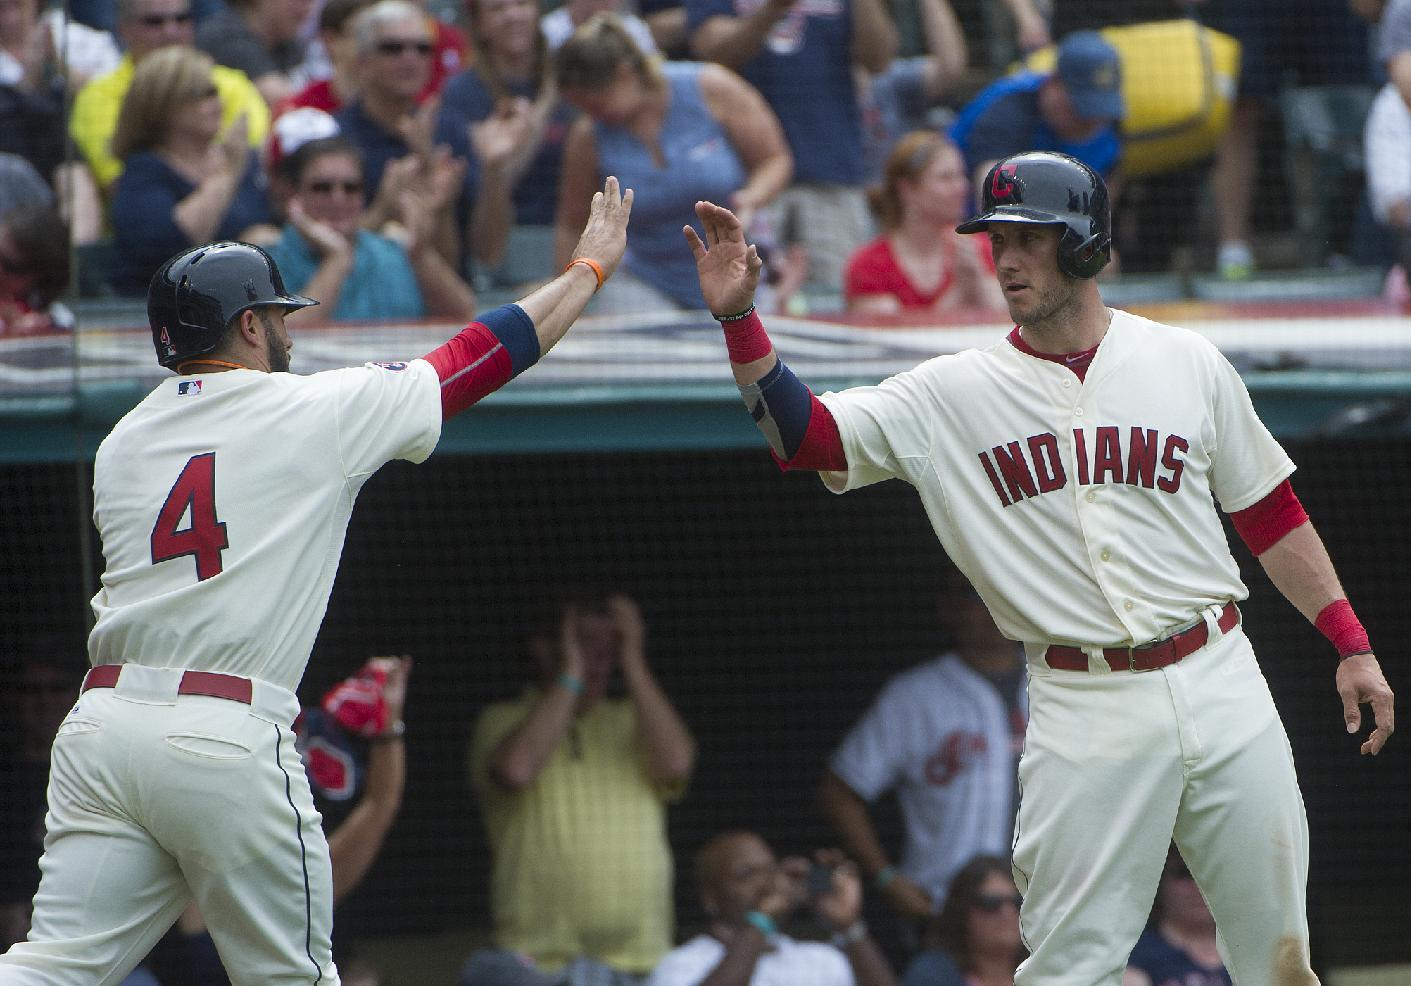 Indians' win streak reaches 6 games, Reds' skid hits 8